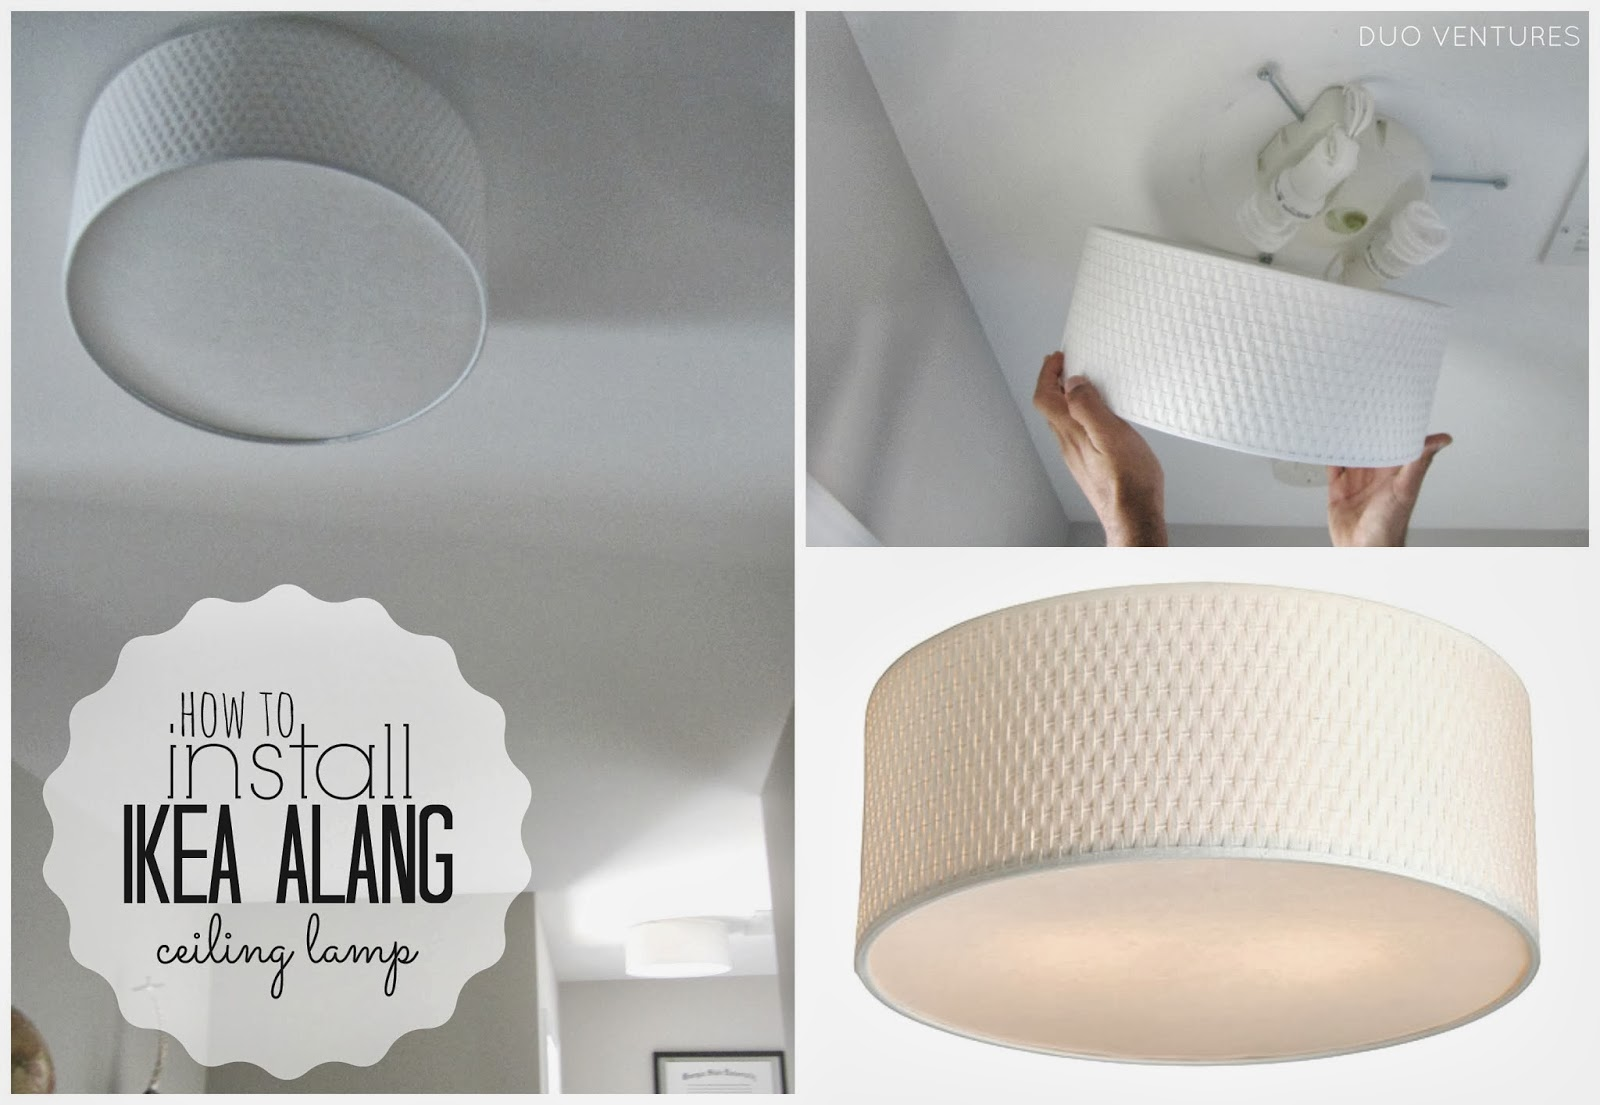 Ikea lighting fixtures ceiling j ole duo ventures how to install ikea alang ceiling lamp arubaitofo Images